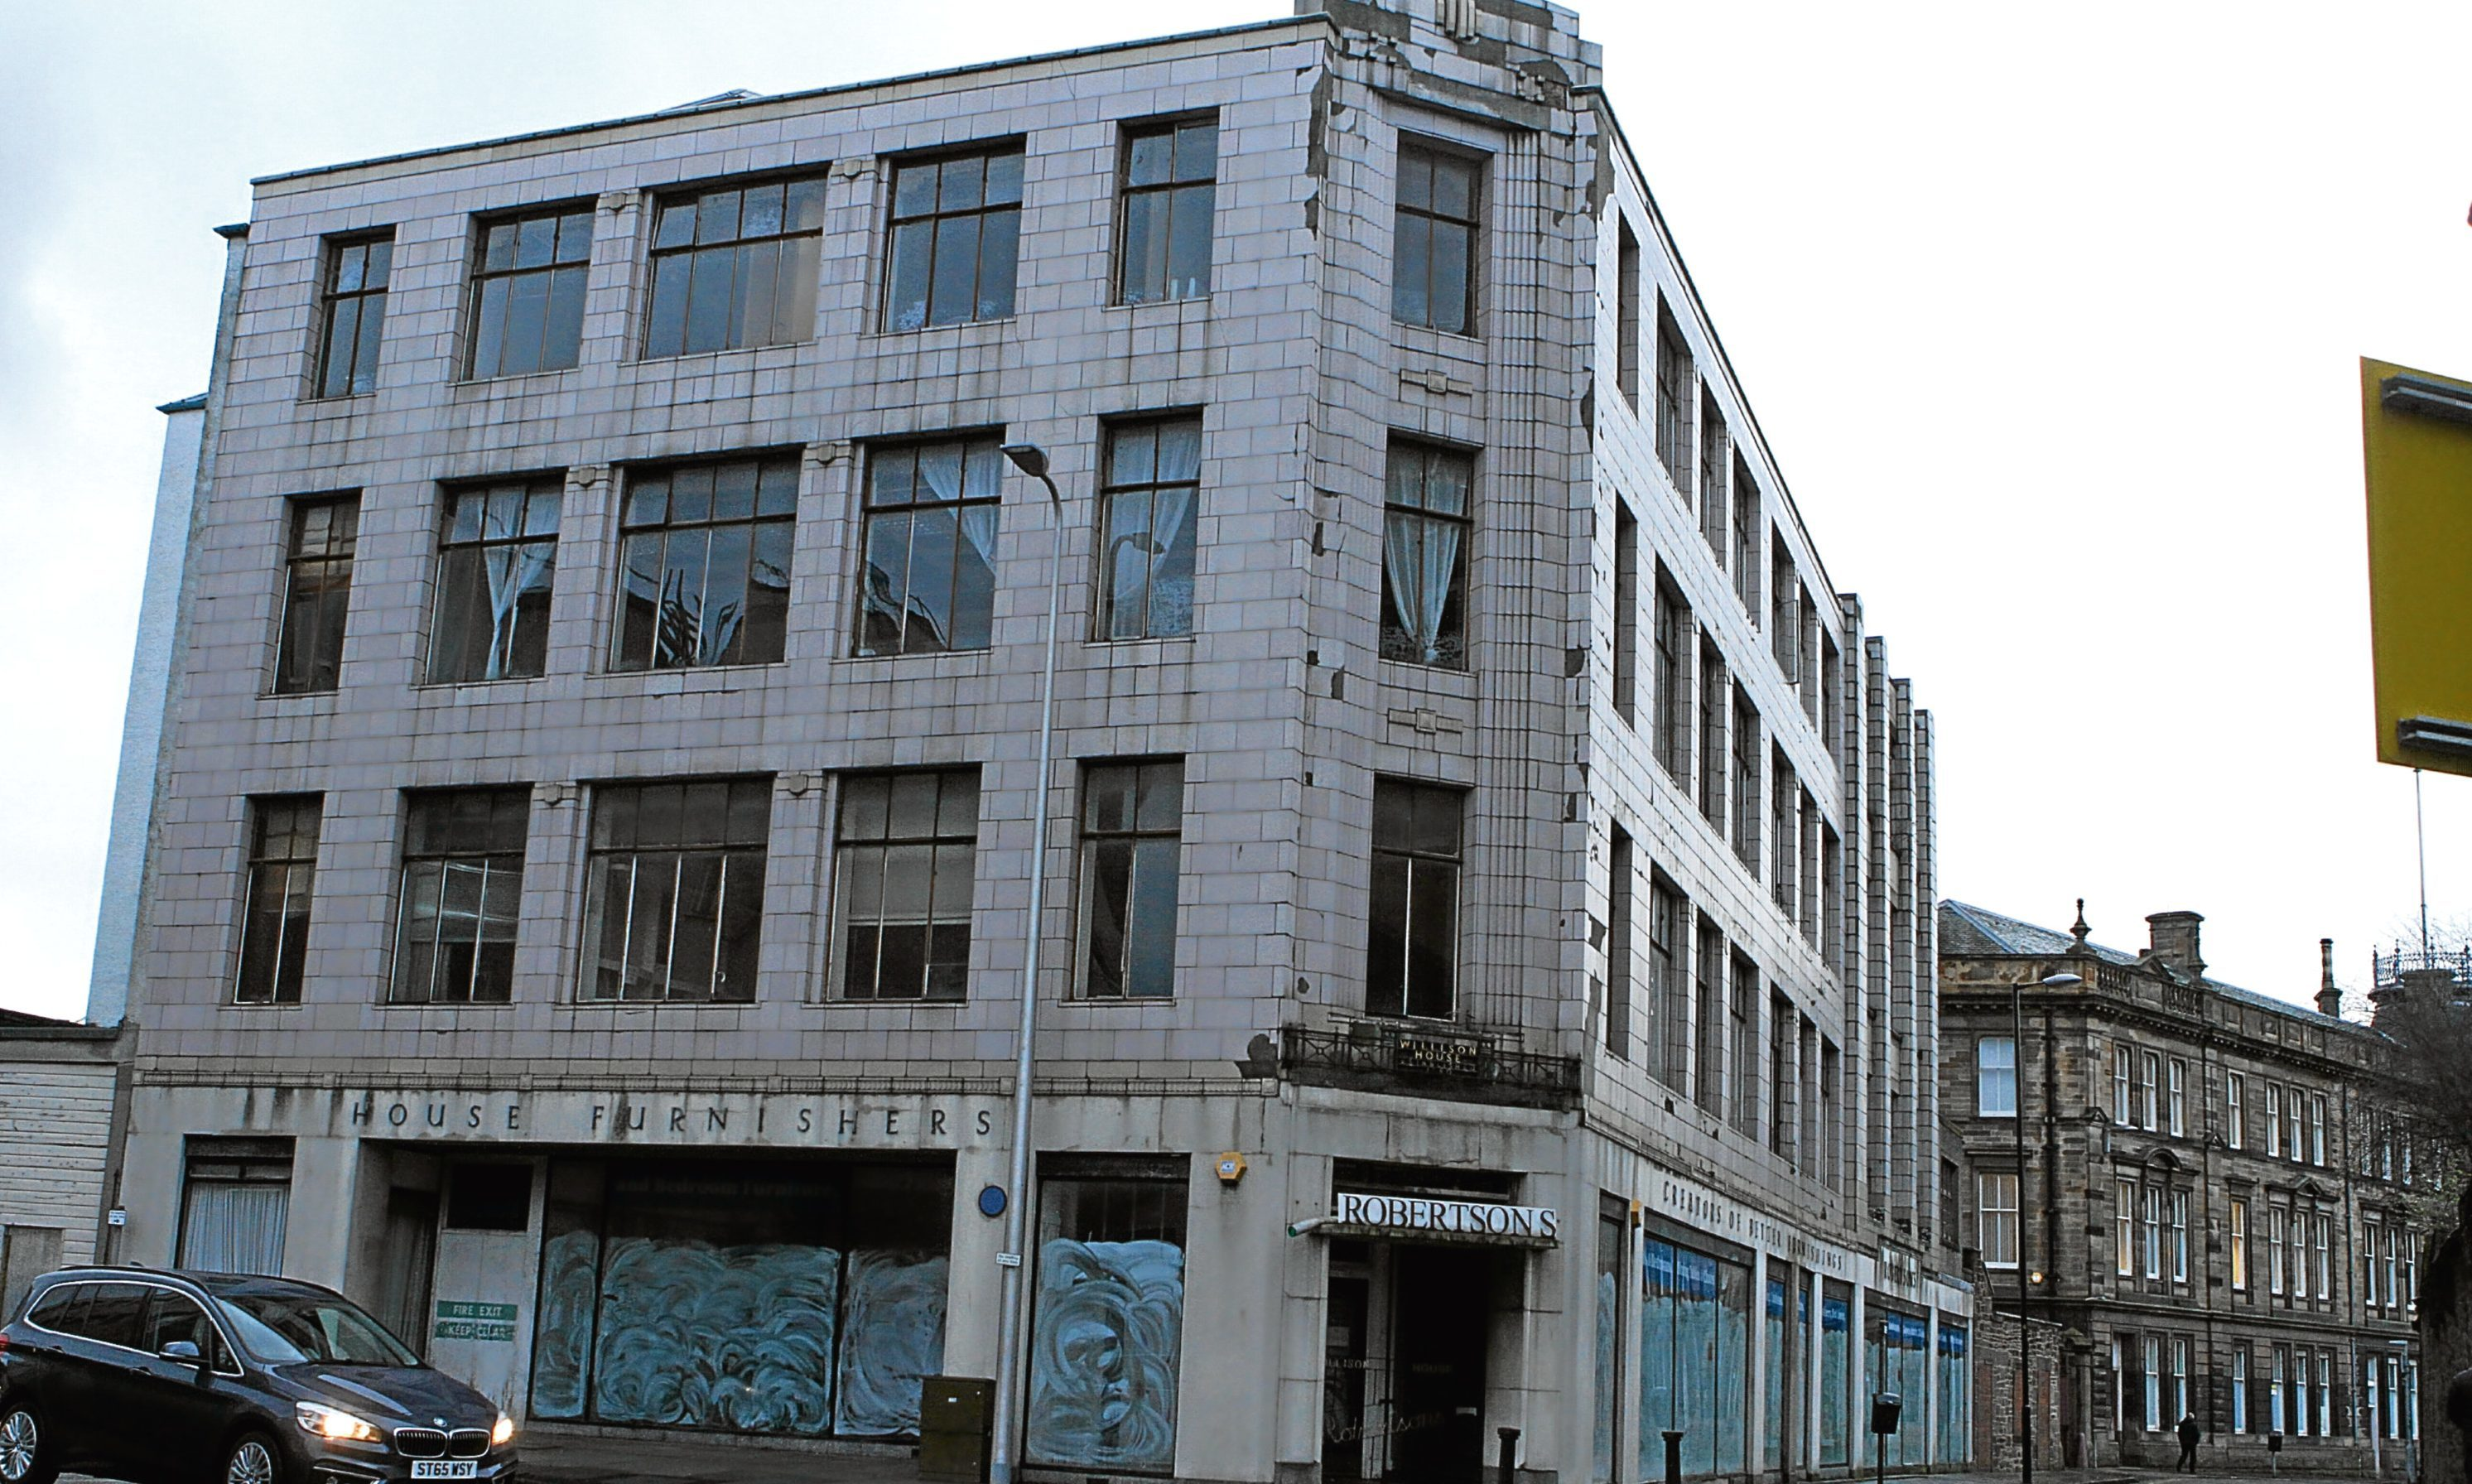 The former Robertson's furniture store in Barrack Street.